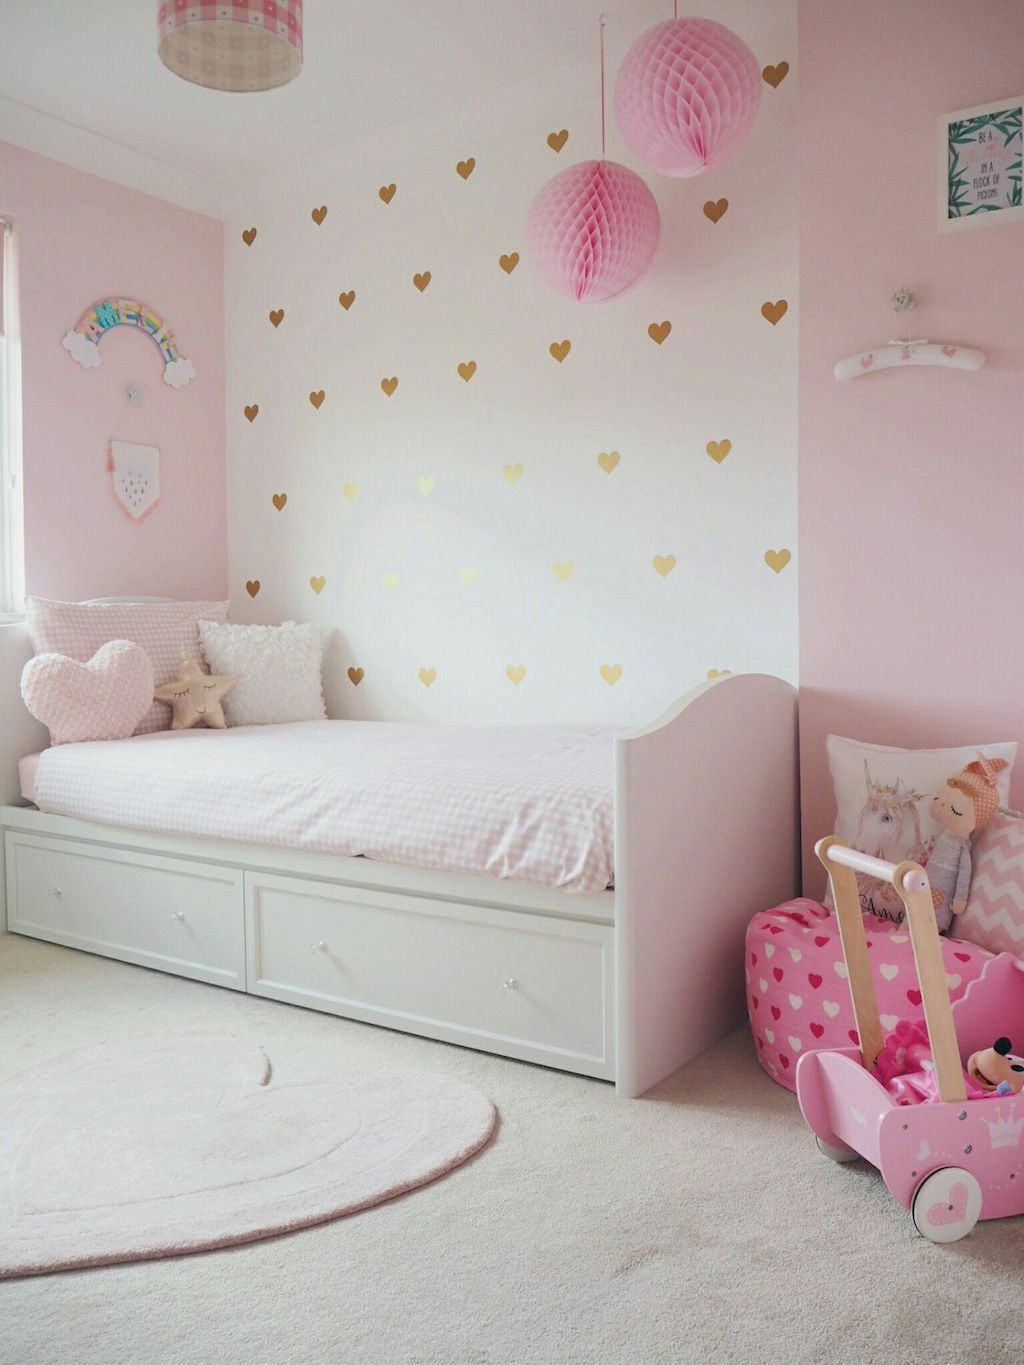 Children Bedroom Ideas To Enjoy Their Childhood Days Home To Z Girly Bedroom Toddler Bedroom Girl Toddler Bedrooms Toddler girls bedroom ideas